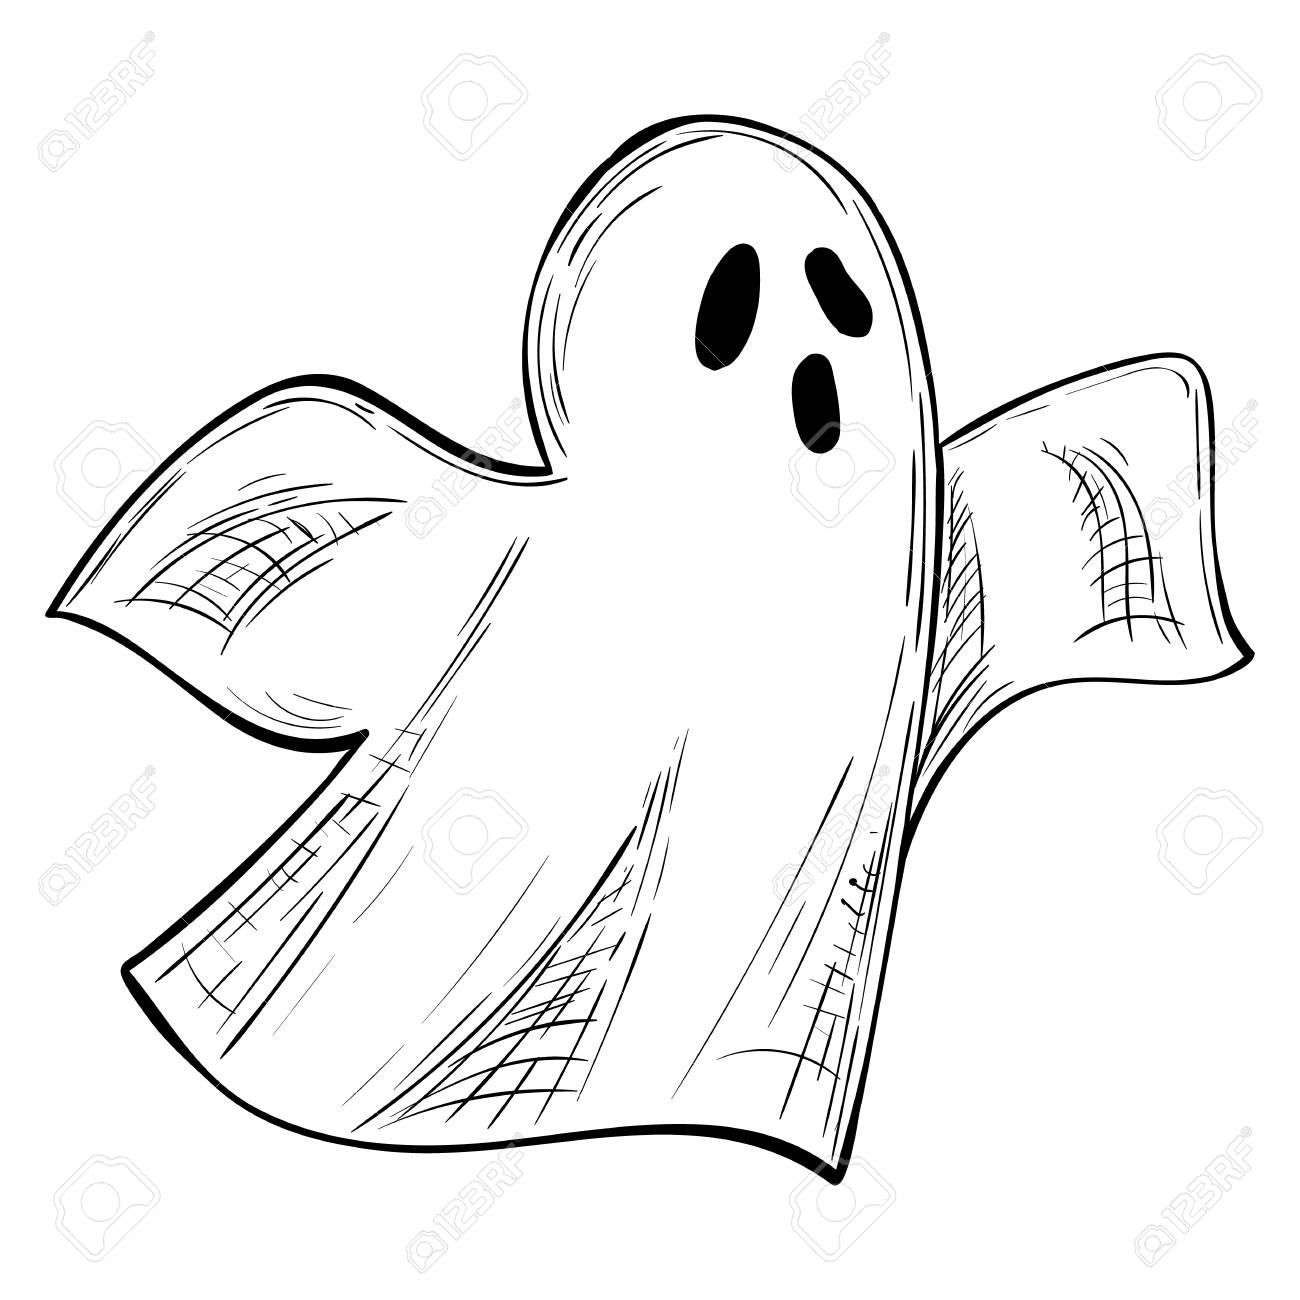 Pin by 🦇 👻 SHIRLEY 🦇 🕷️ on Halloween Costumes ️️For Girls